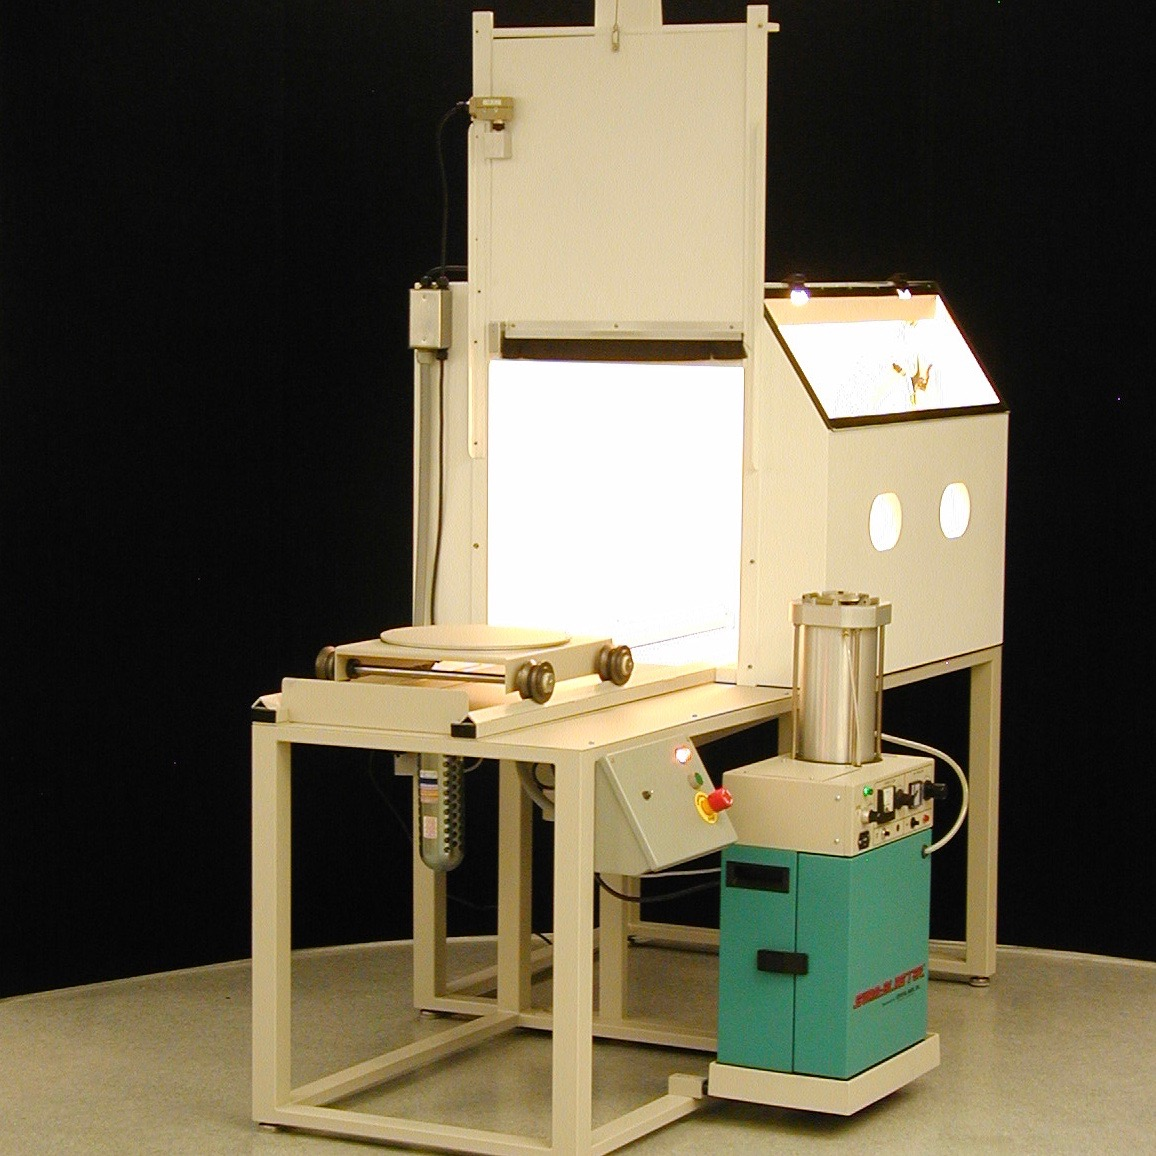 CMAB Automated Micro Sand Blasting System with XV-1 SWAM Blaster